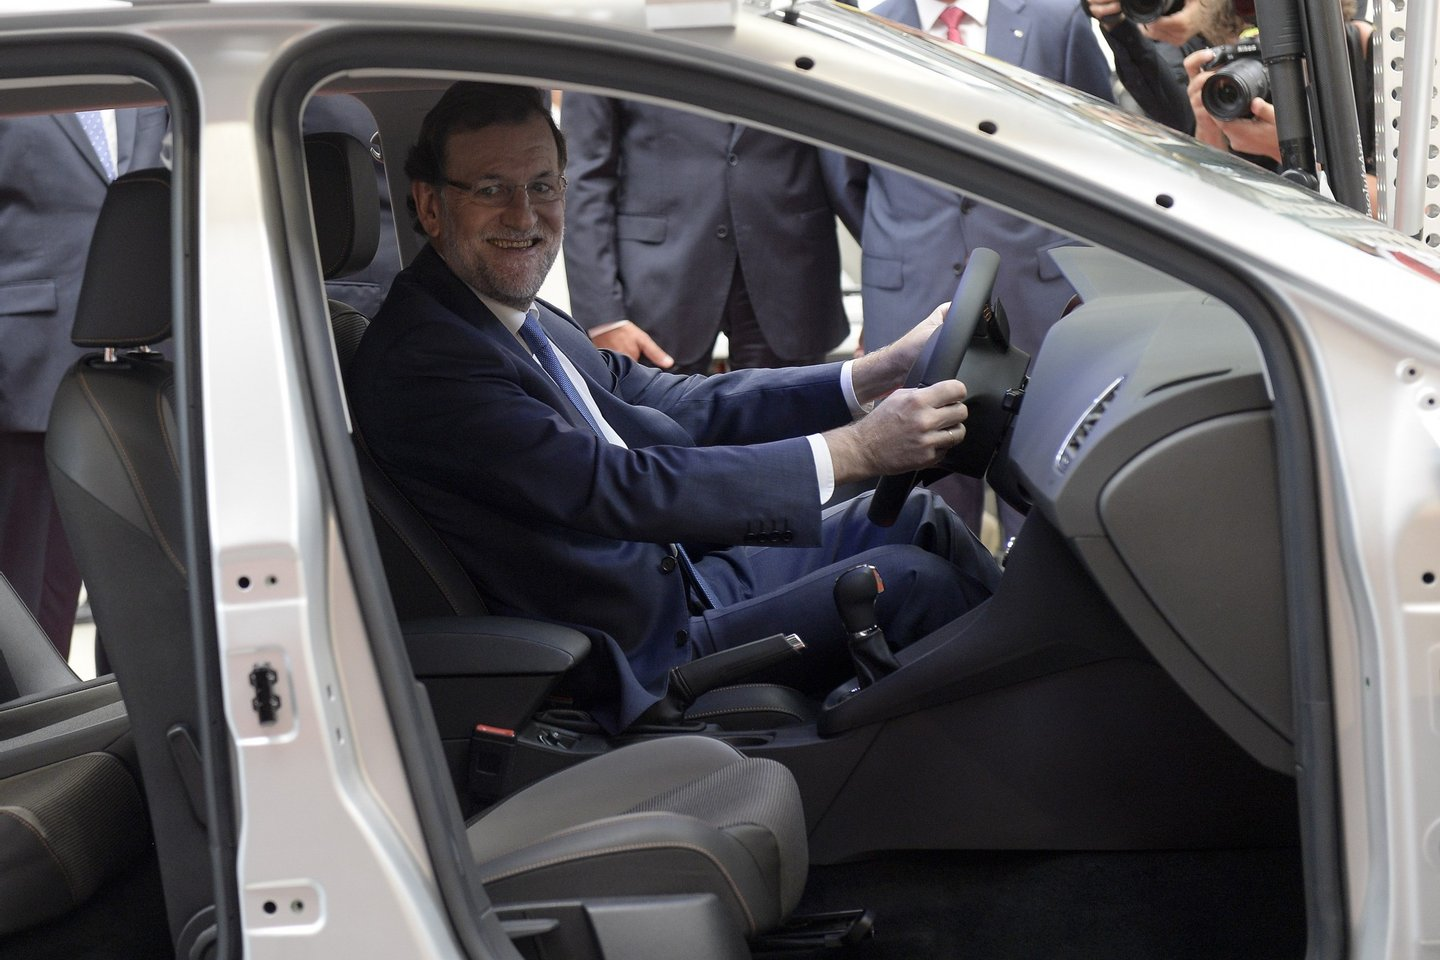 Spanish Prime Minister Mariano Rajoy smiles as he sits in a Seat car during a visit to the SEAT motor vehicle plant in Martorell near Barcelona on September 8, 2015 to celebrate the 40th anniversary of the plant's technical centre. AFP PHOTO / JOSEP LAGO (Photo credit should read JOSEP LAGO/AFP/Getty Images)